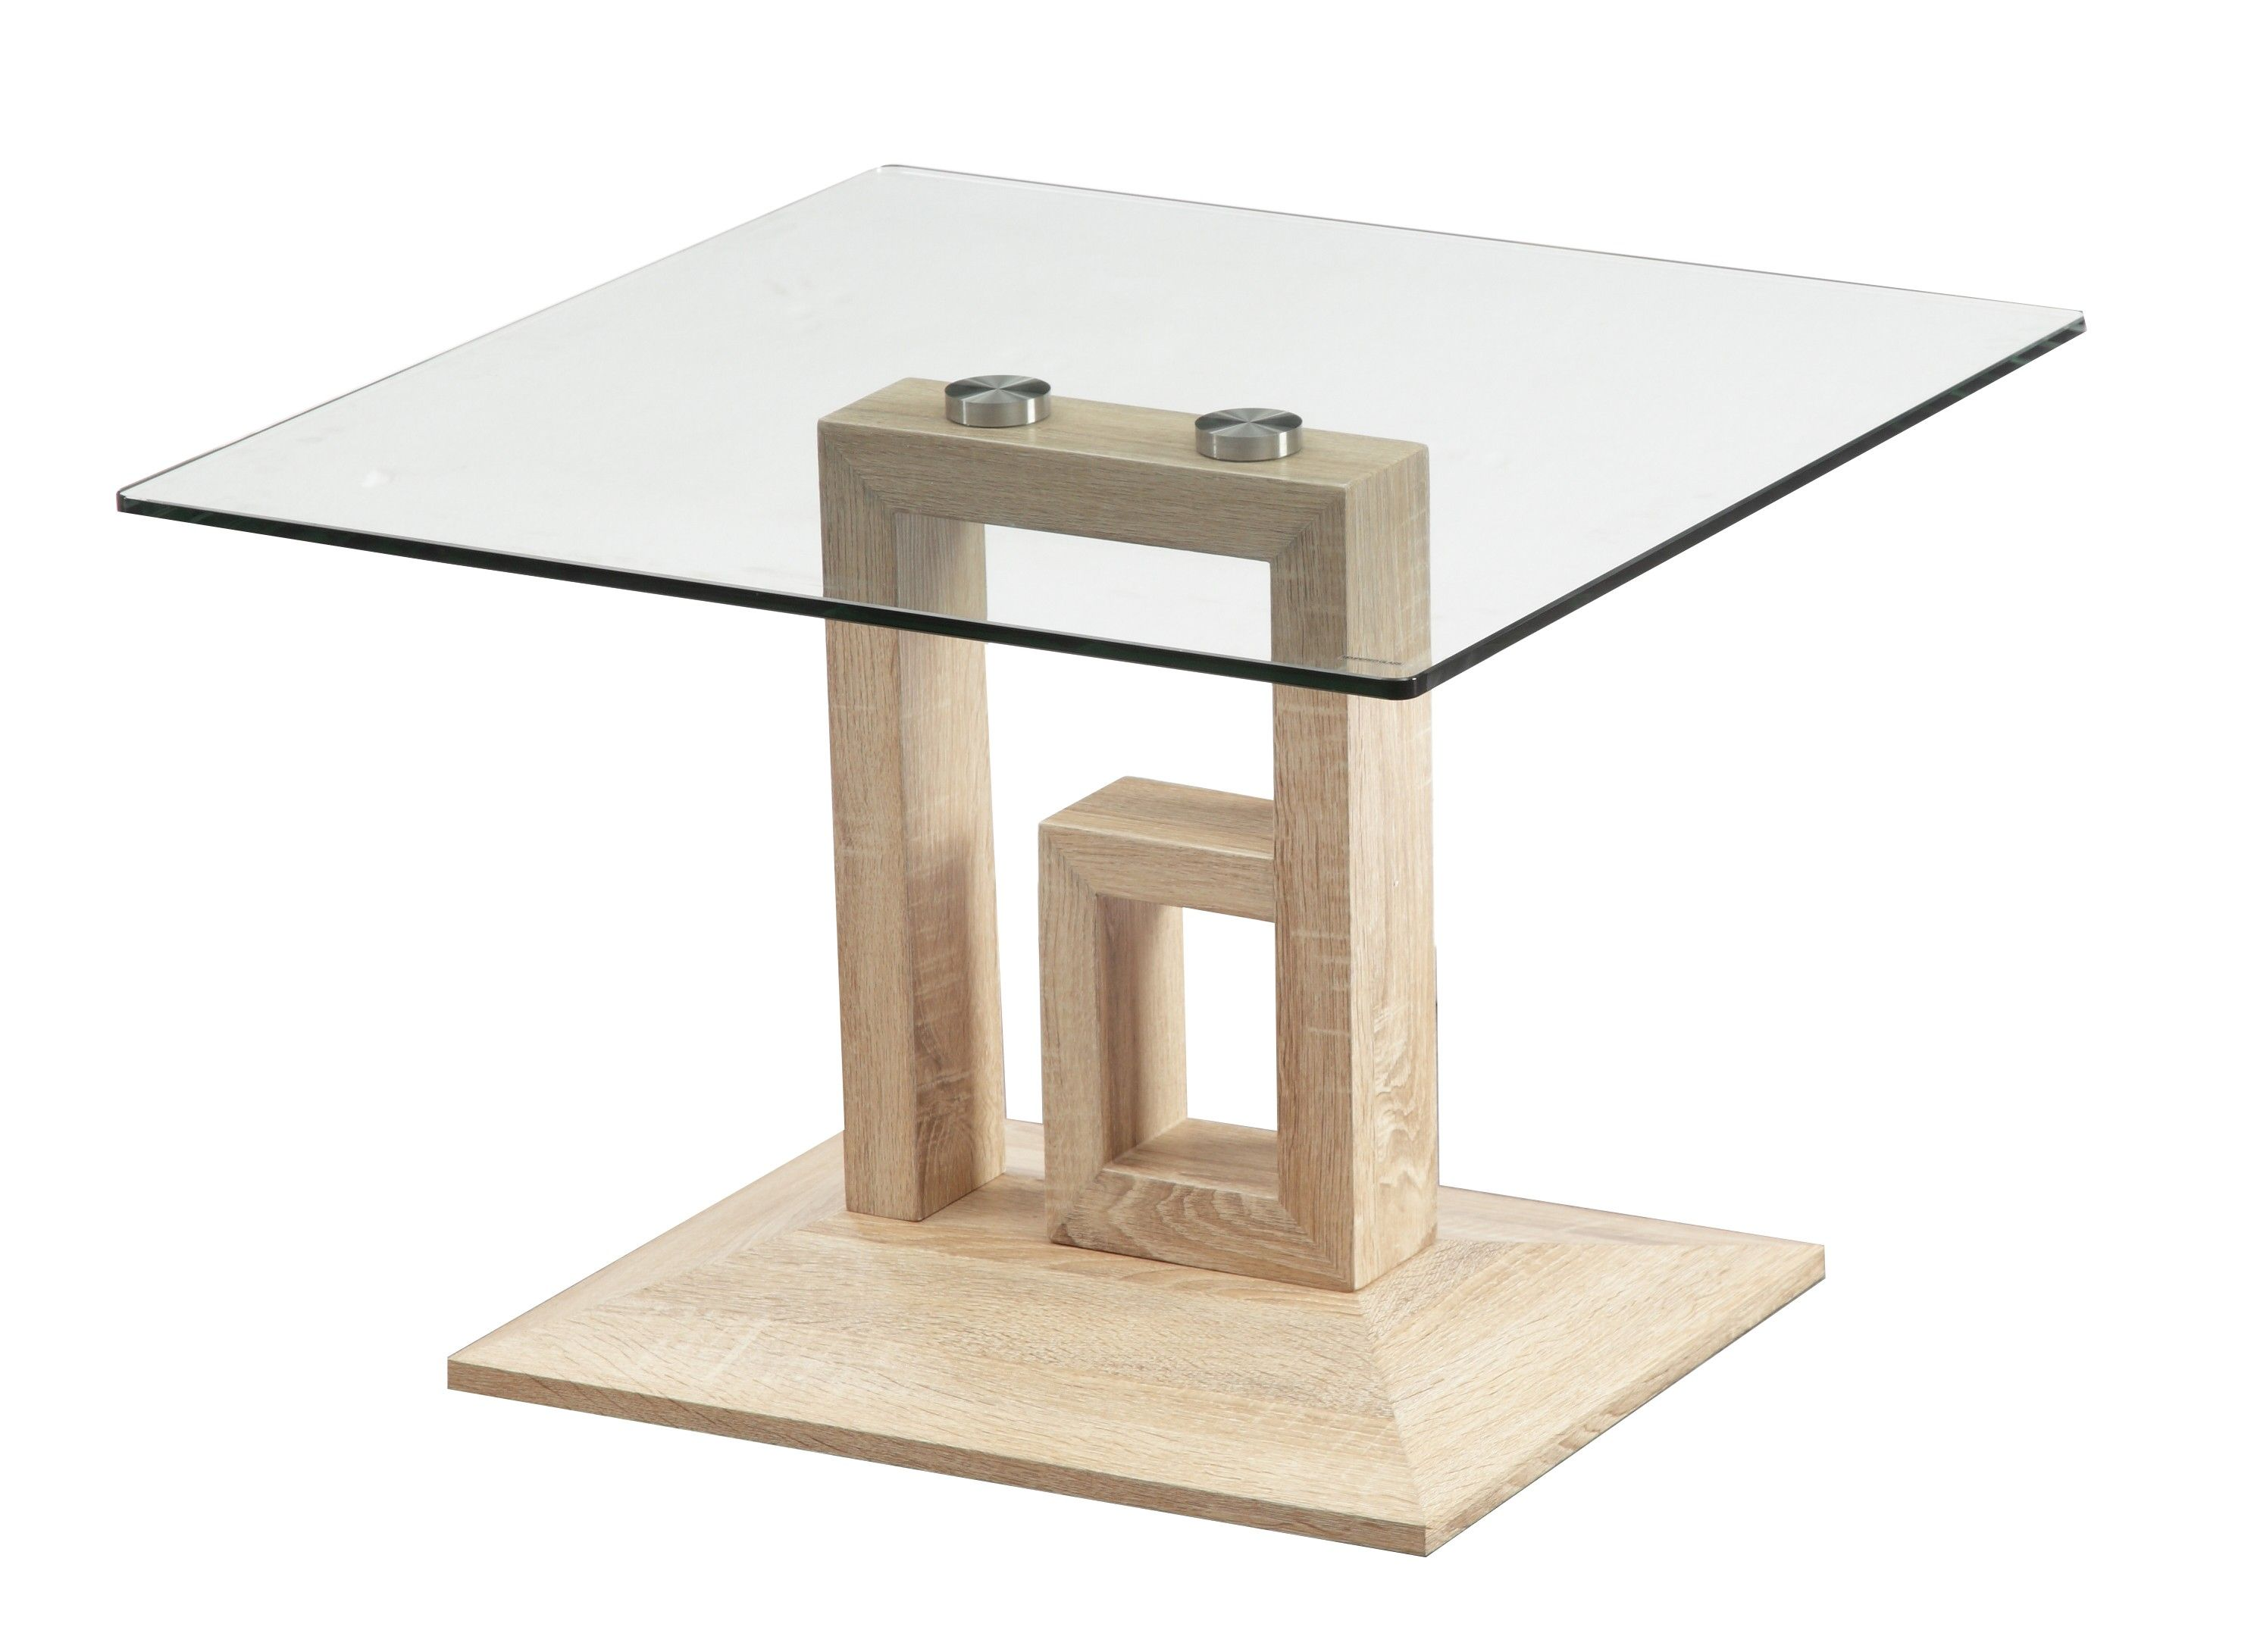 Lynx clear glass lamp table with oak base 219 furniture lounge lynx clear glass lamp table with oak base 219 furniture lounge livingroom aloadofball Choice Image